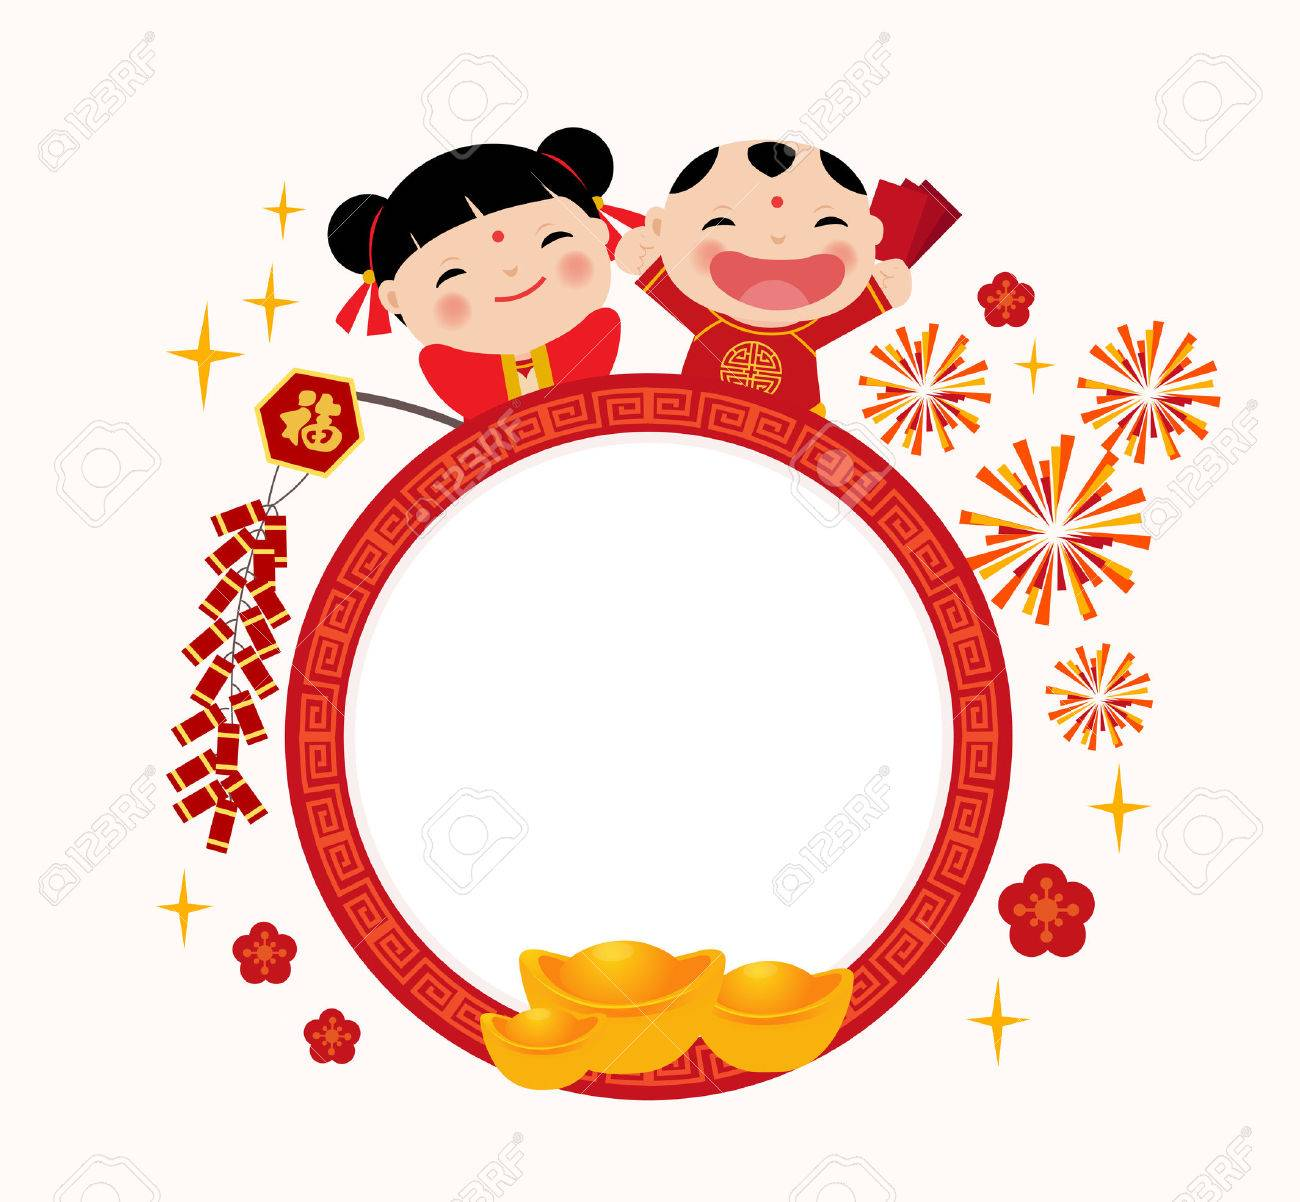 Chinese New Year Greetings Royalty Free Cliparts Vectors And Stock